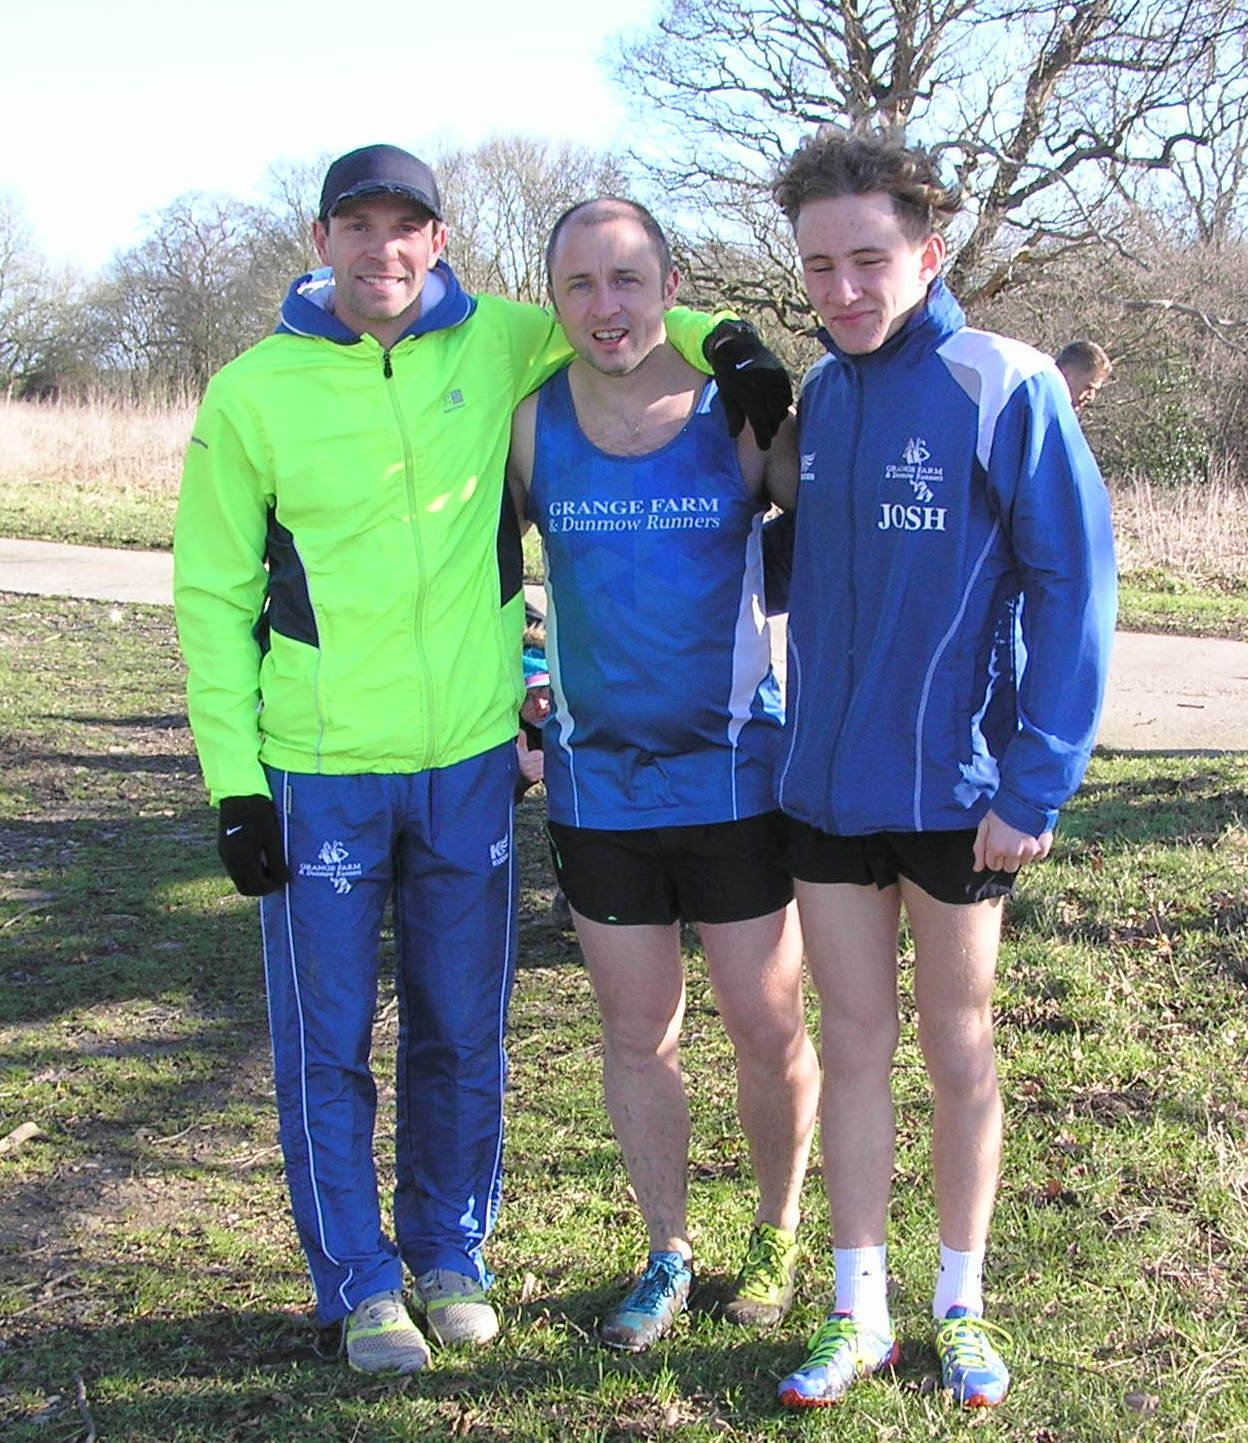 Alistair Brown, Lee Pickering and Josh Sowman were part of the Grange Farm and Dunmow Runners men's team that finished second in the Mid-Essex Cross-Country league round at Highwood.